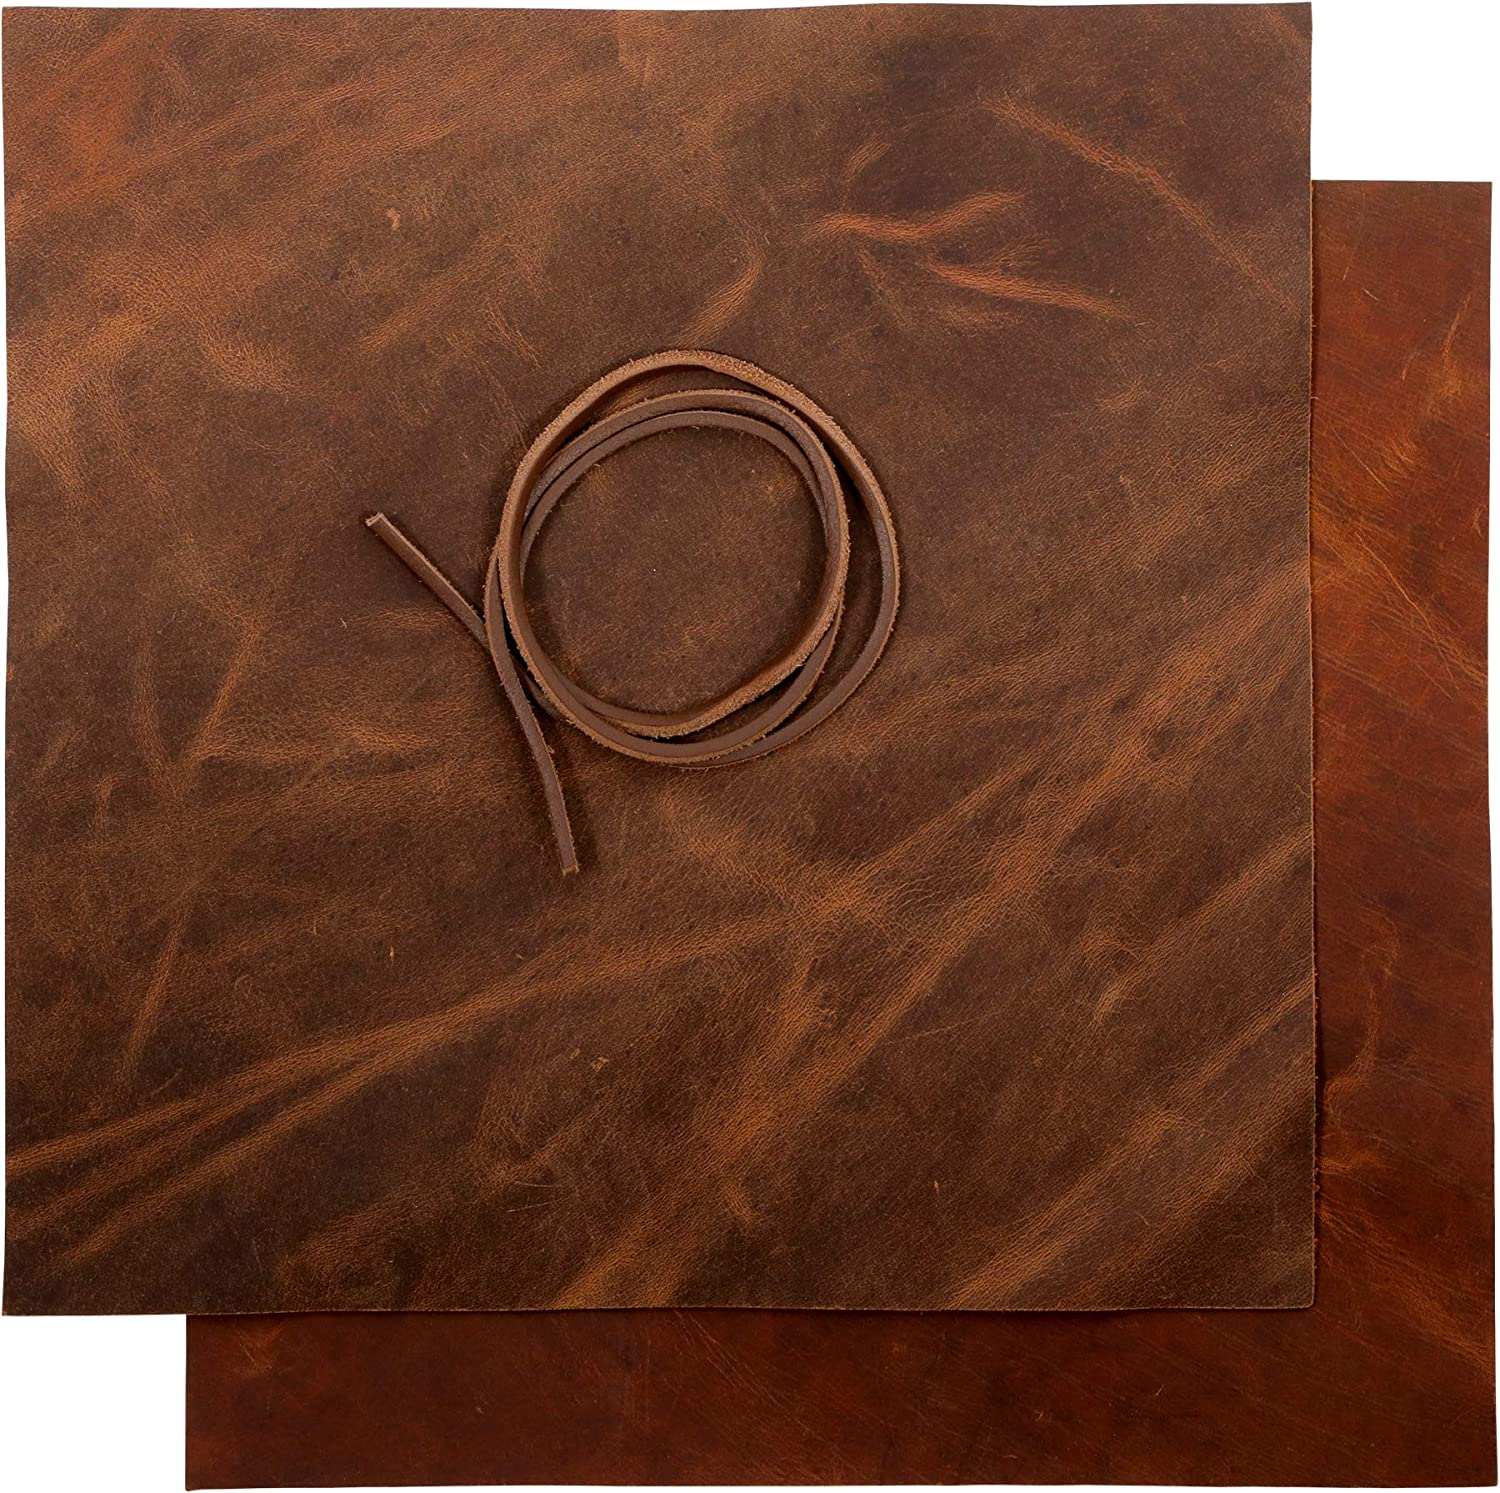 Heavy Weight Leather 9-10 oz Thick Full Grain Tooling Leather Cowhide Skin Crazy Horse Crafting Arts Real Leather Bourbon, 6x12